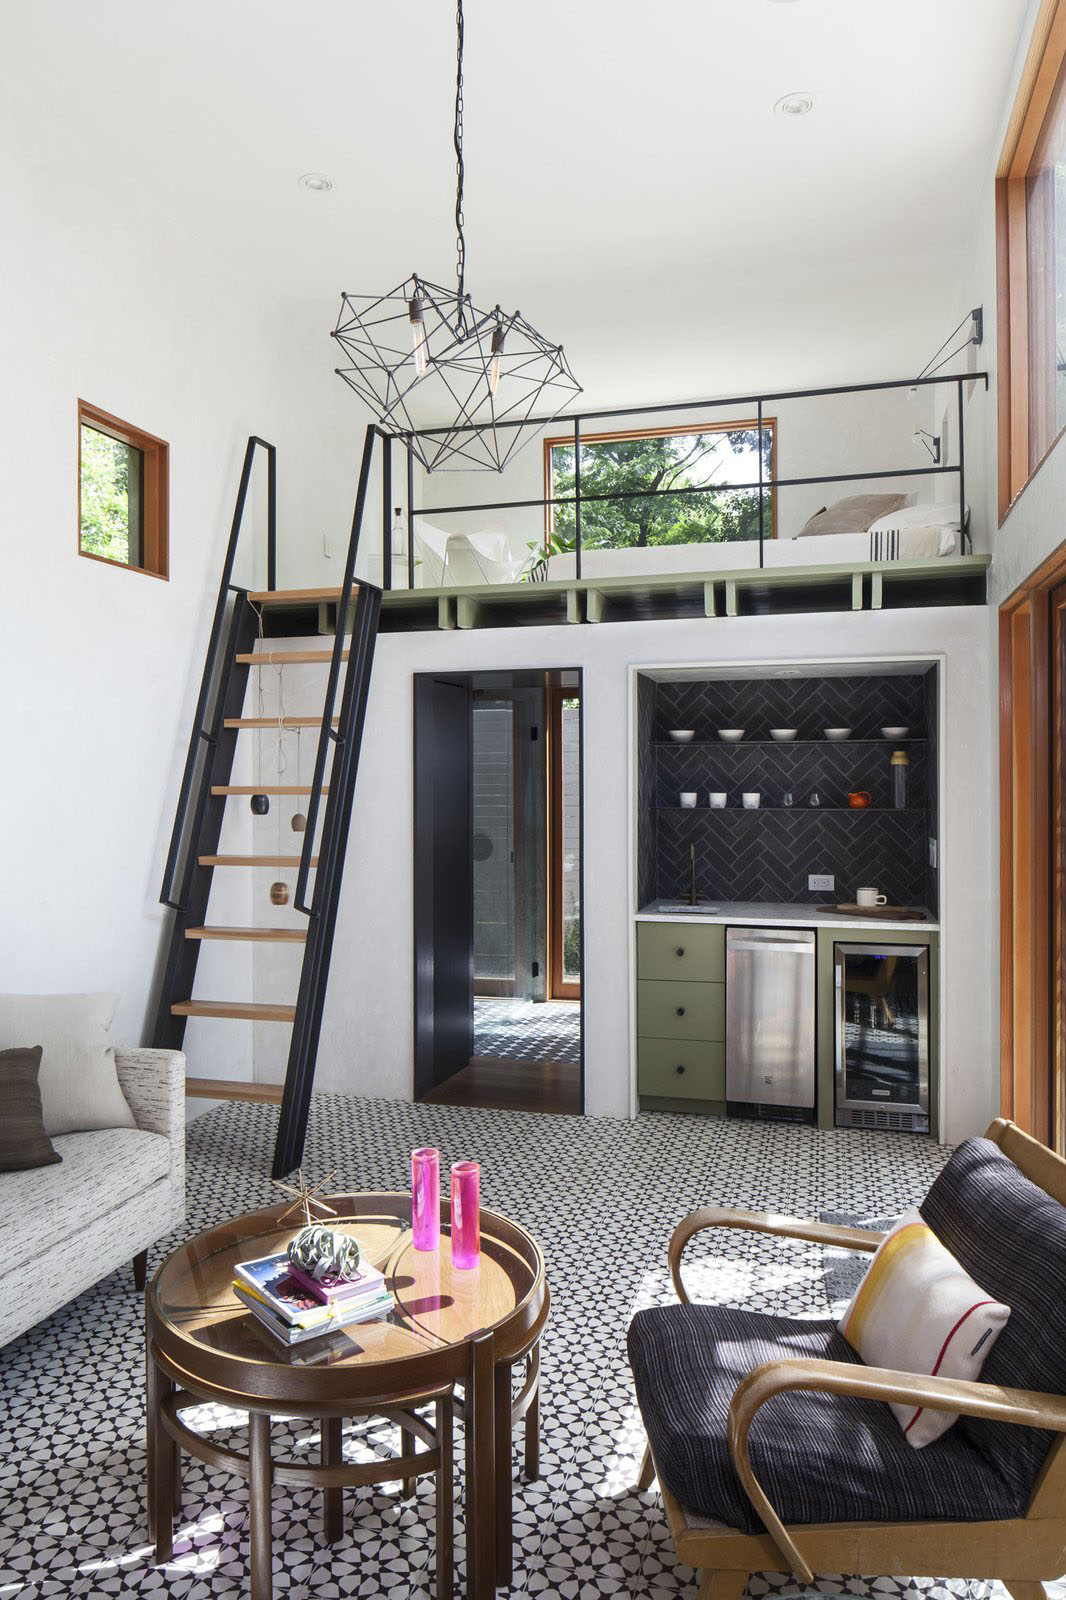 DoubleHeight Casita and New Pool Added to a Small Backyard  iDesignArch  Interior Design